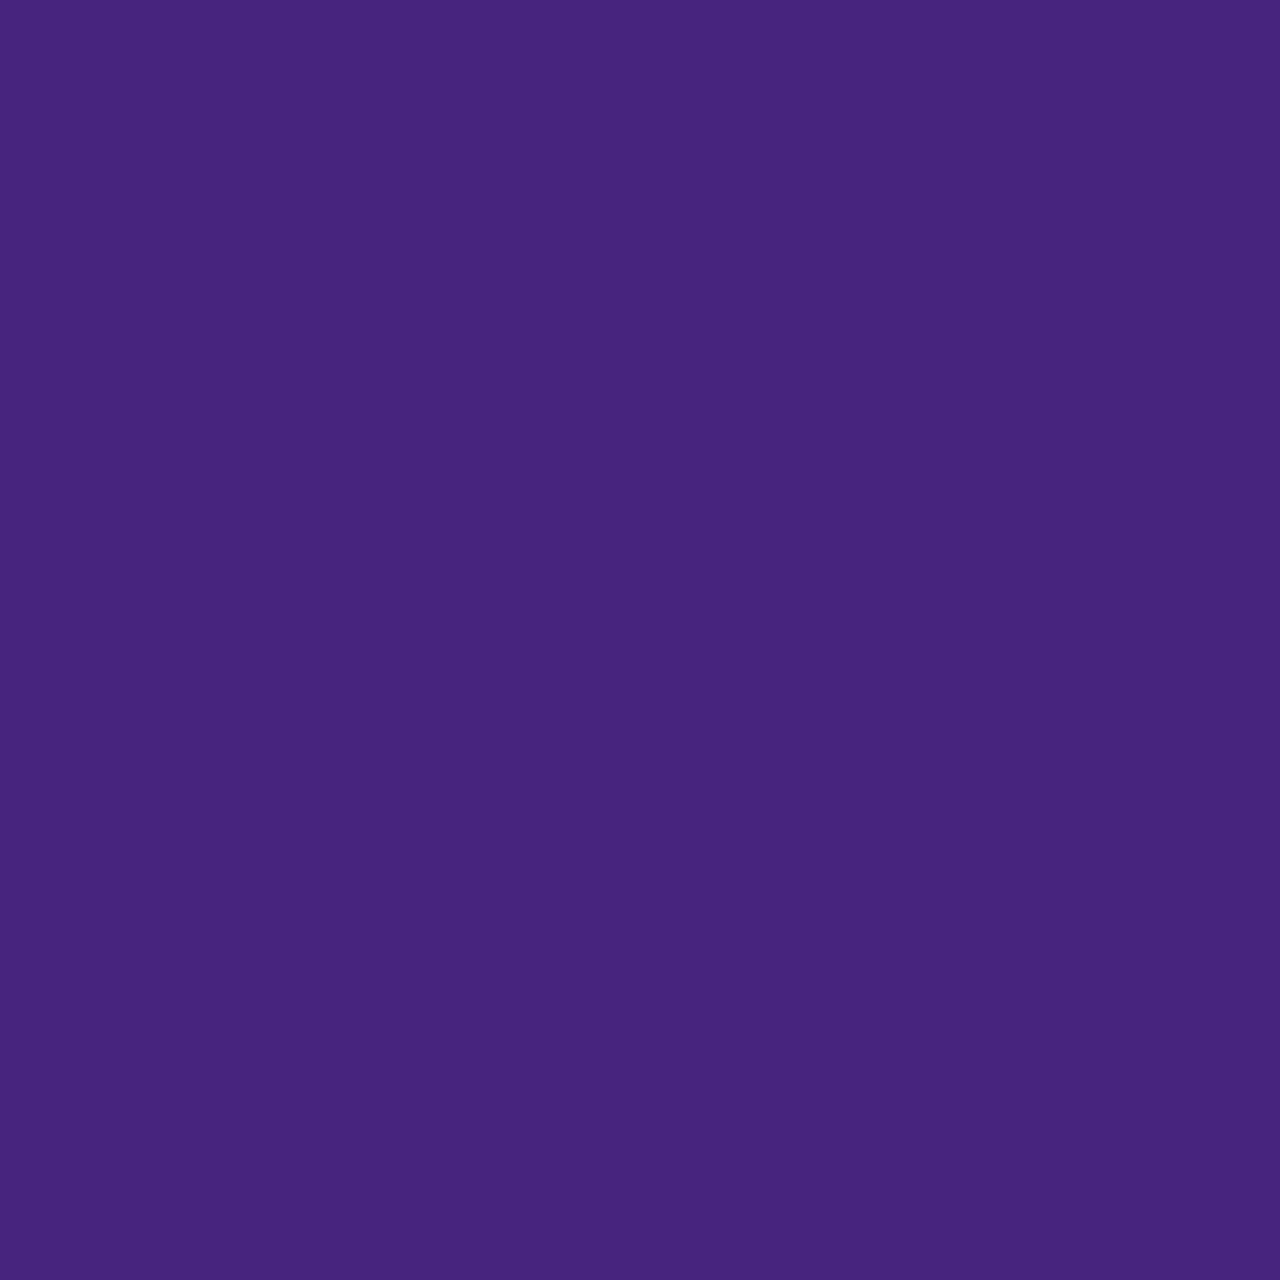 """Oracal 631 12/"""" x 5ft Lavender Roll Vinyl Yellow and Teal"""